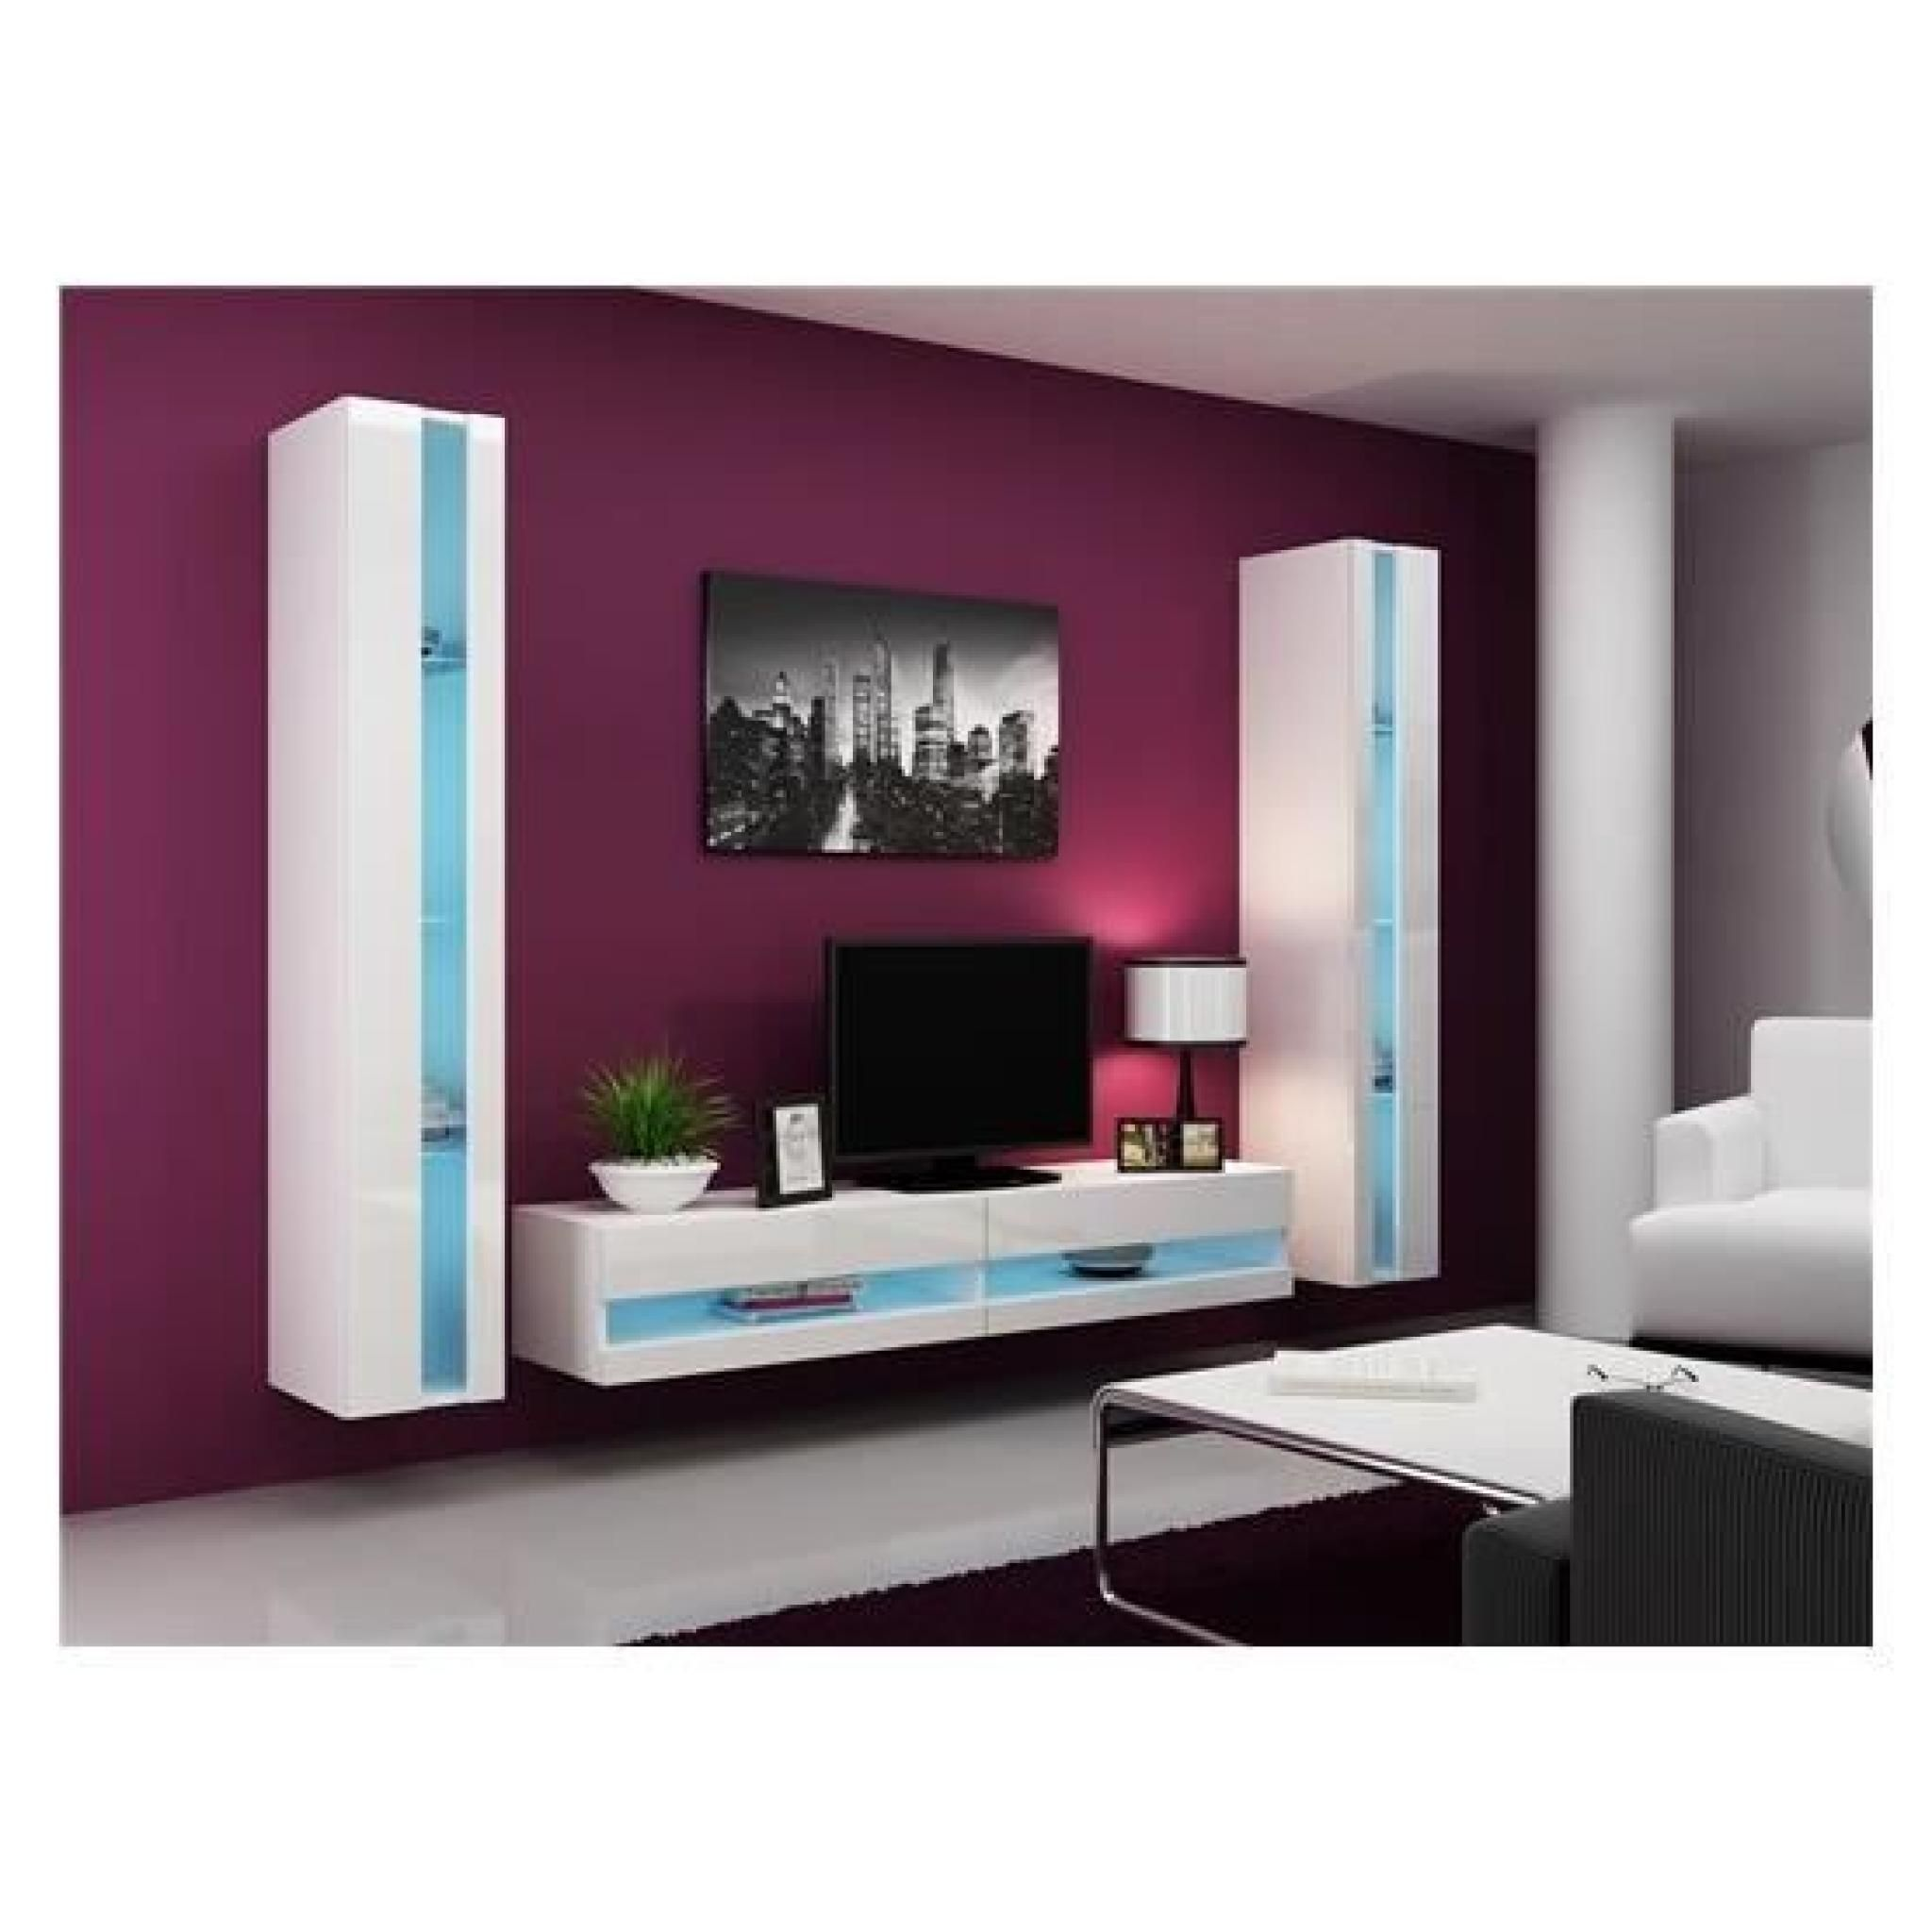 Meuble Tv Design Cdiscount - Redoutable Meuble Tv Pas Cher D Coration Fran Aise Pinterest [mjhdah]https://i.pinimg.com/originals/b4/3f/02/b43f0295126271d2b60586d49edb4da1.jpg